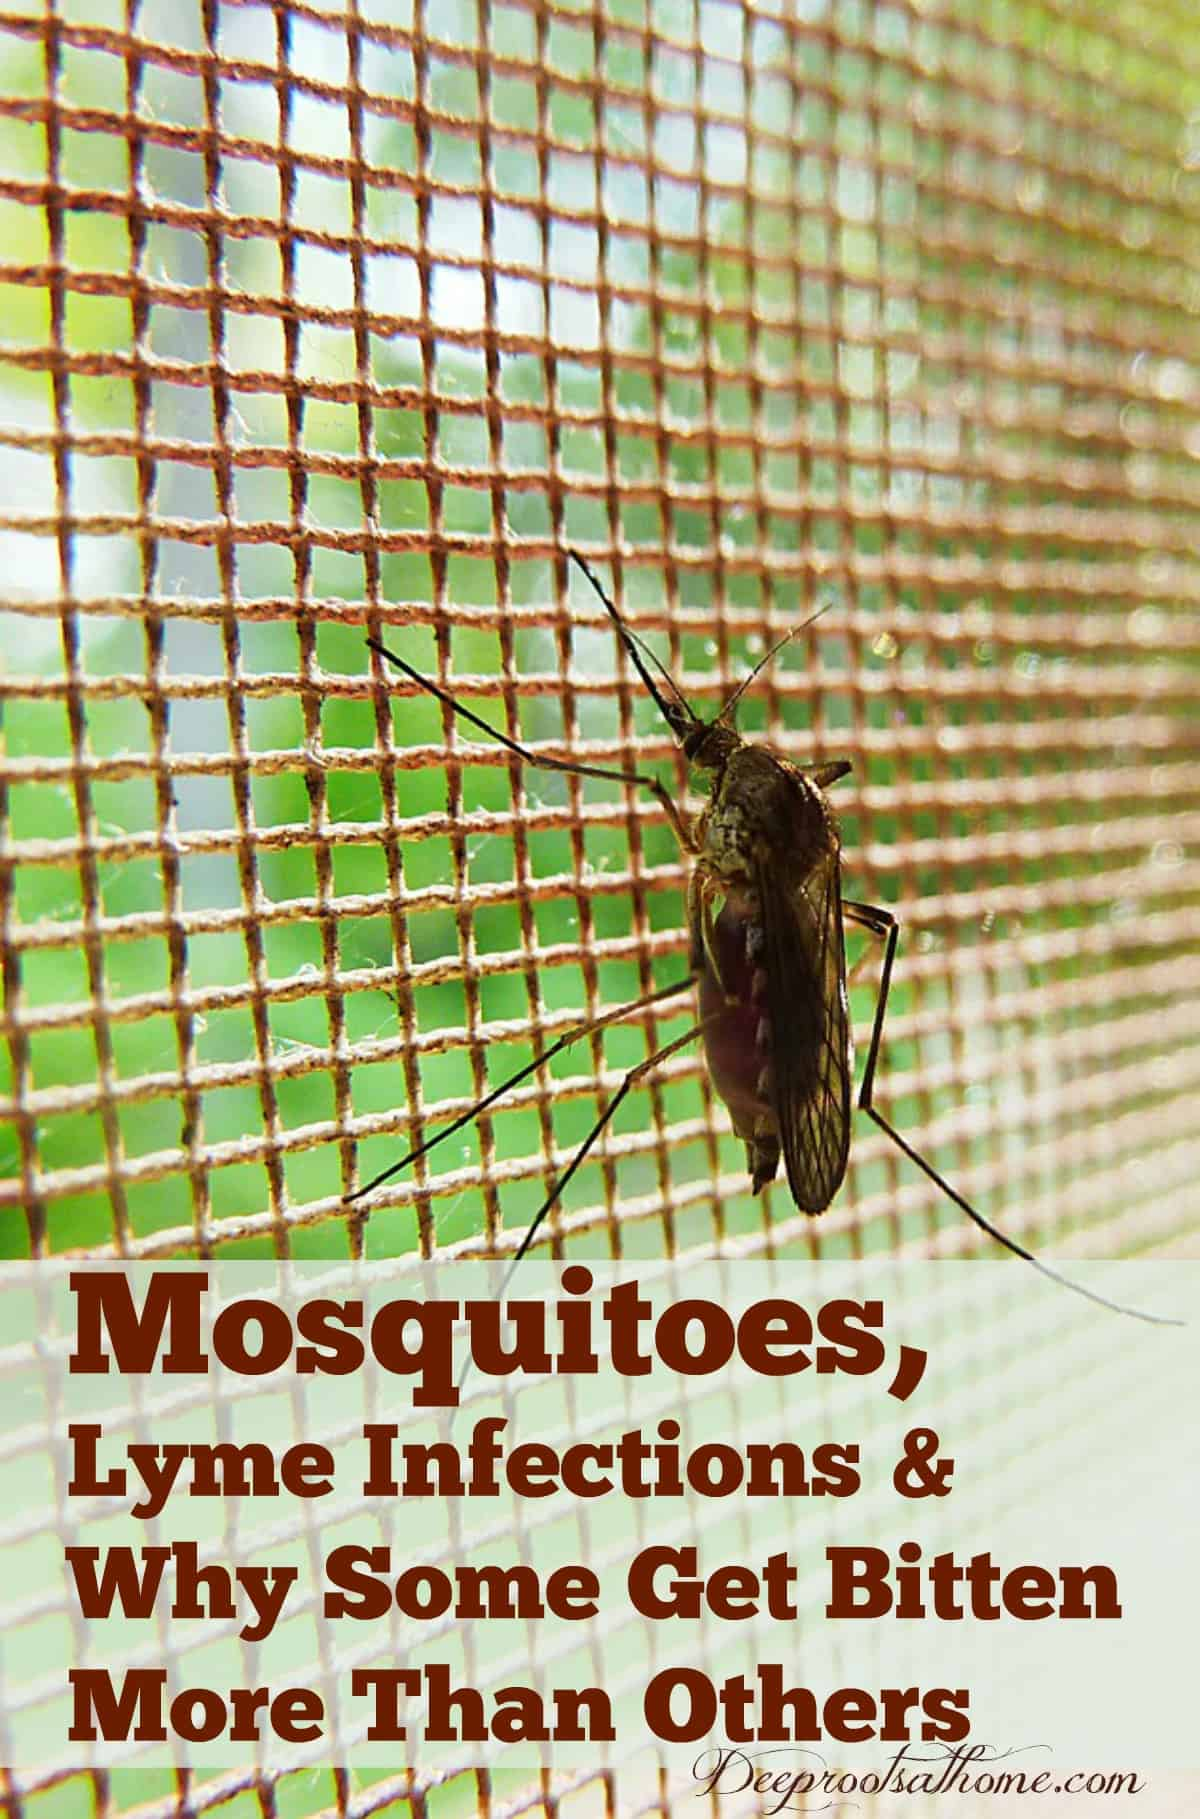 Mosquitoes, Lyme Infections & Why Some Get Bitten More Than Others. A big mosquito waiting for a meal of blood on the screen of a kitchen door. Pin image.